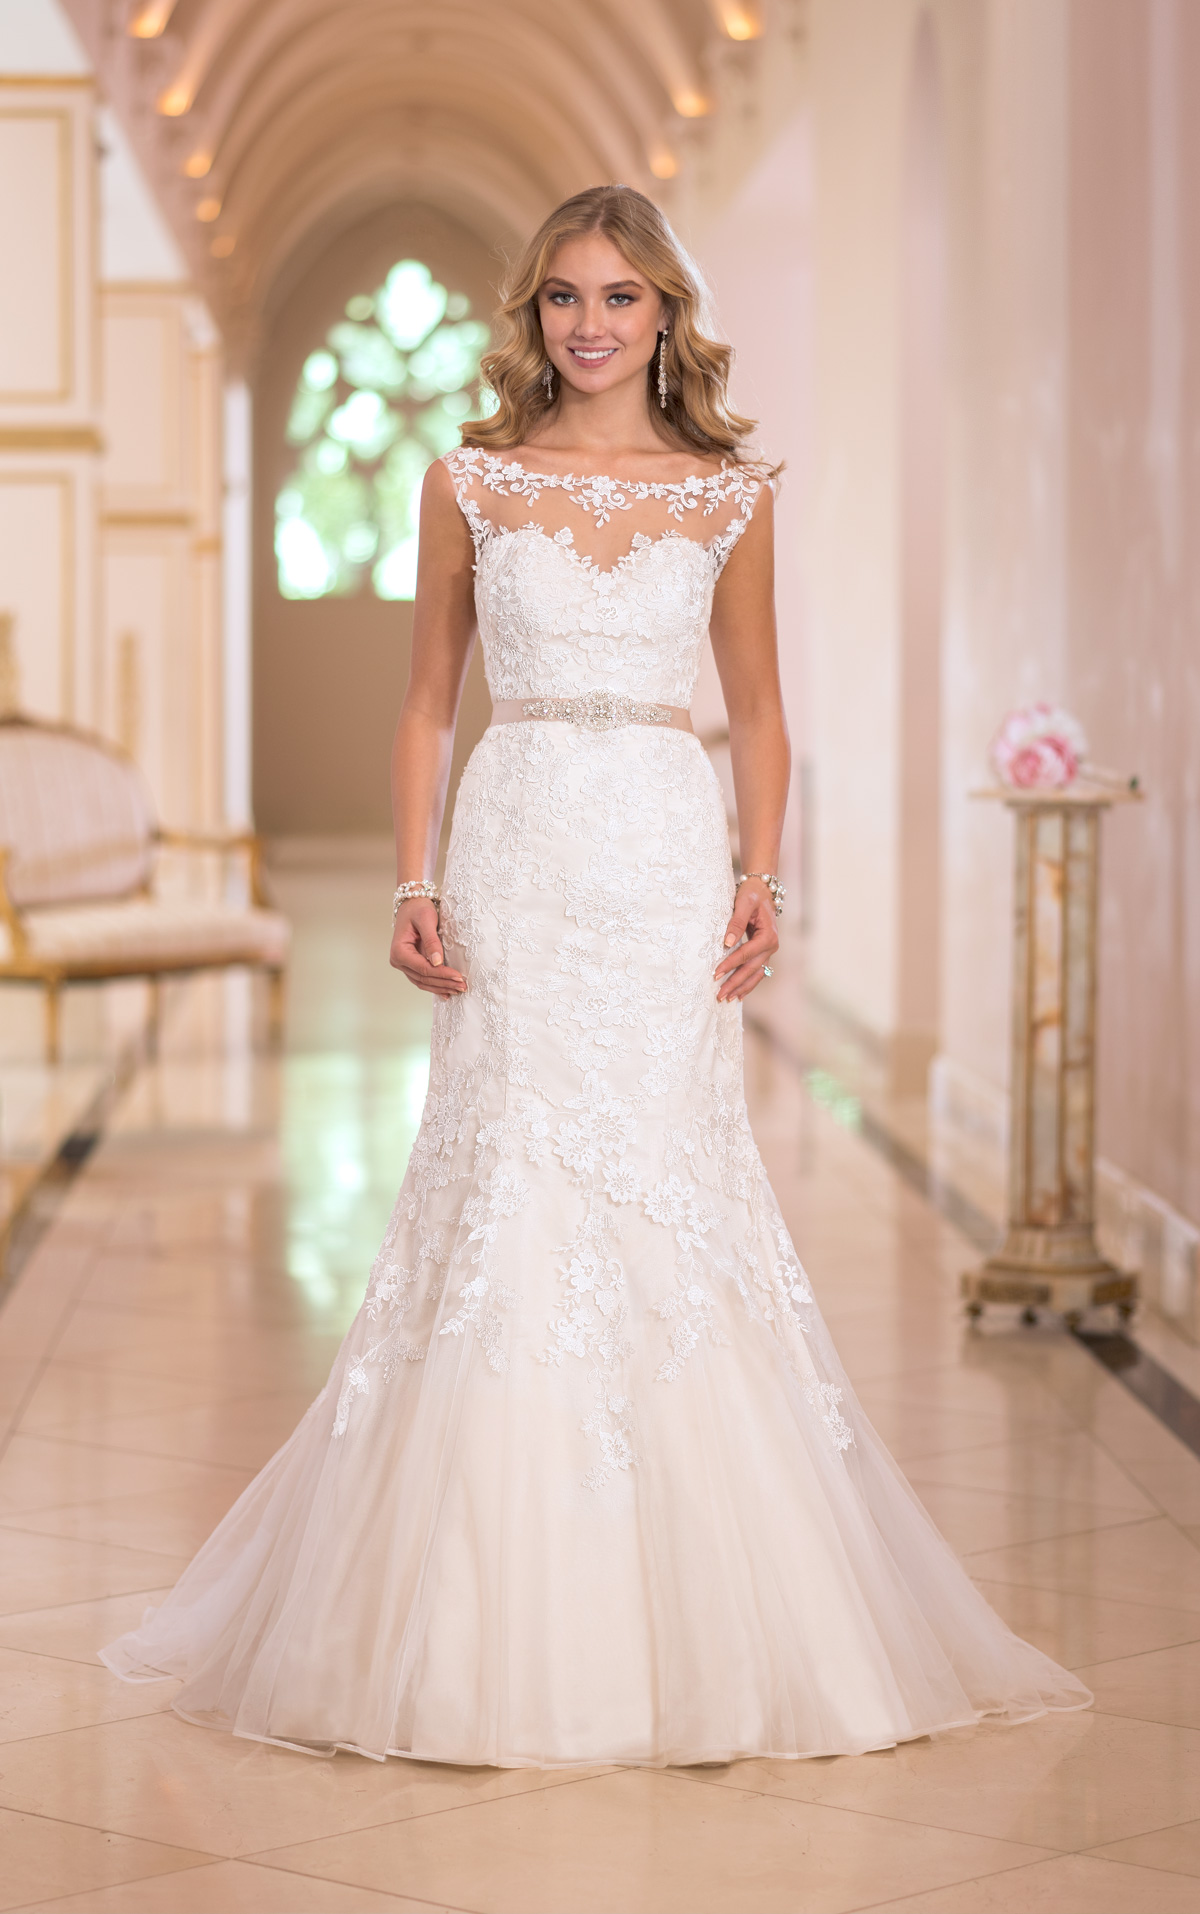 Glamorous stella york wedding dresses 2014 collection modwedding stella york wedding dresses 2014 13 01152014 junglespirit